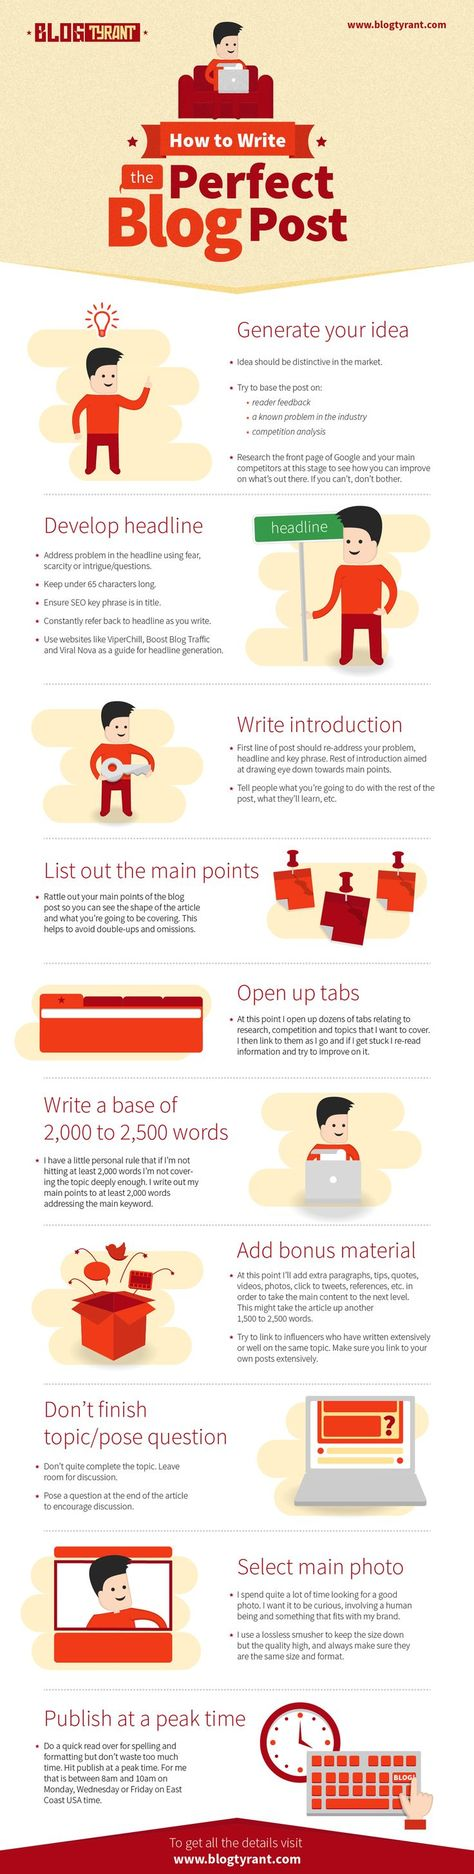 How to Write a Good Blog Post - 12 Expert Tips (2020)